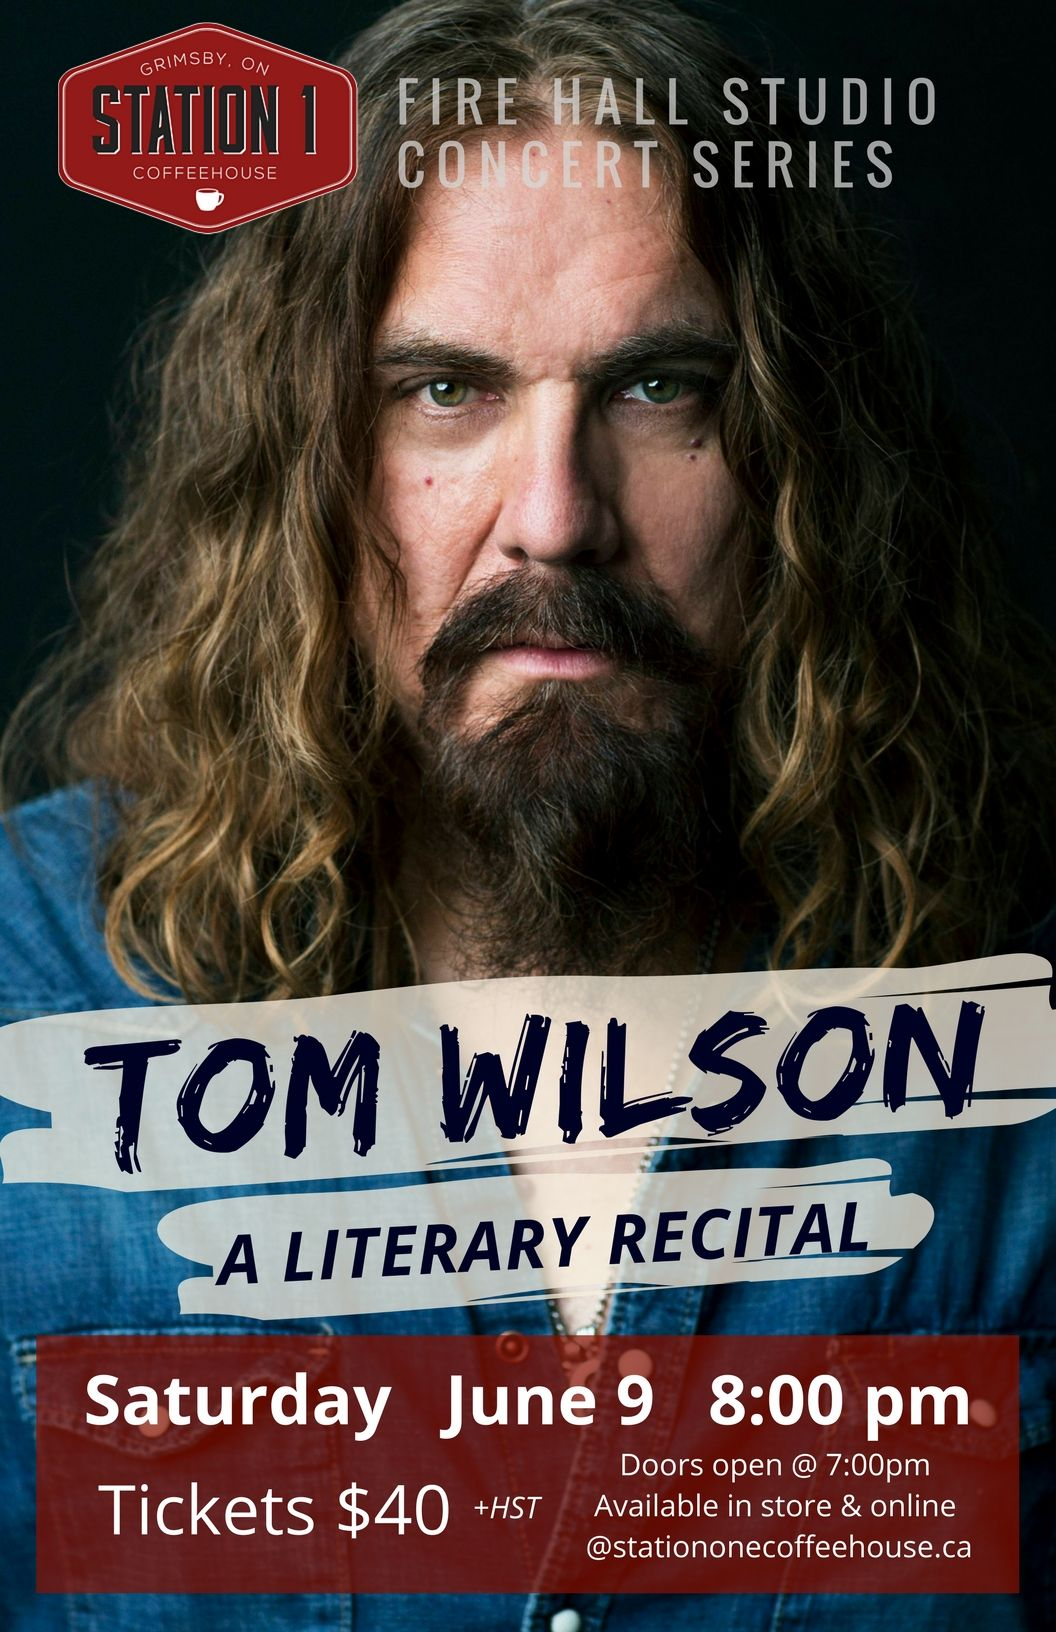 Tom Wilson - A Literary Recital - June 9th, 8:00pm - Station 1 - Grimsby, Ont